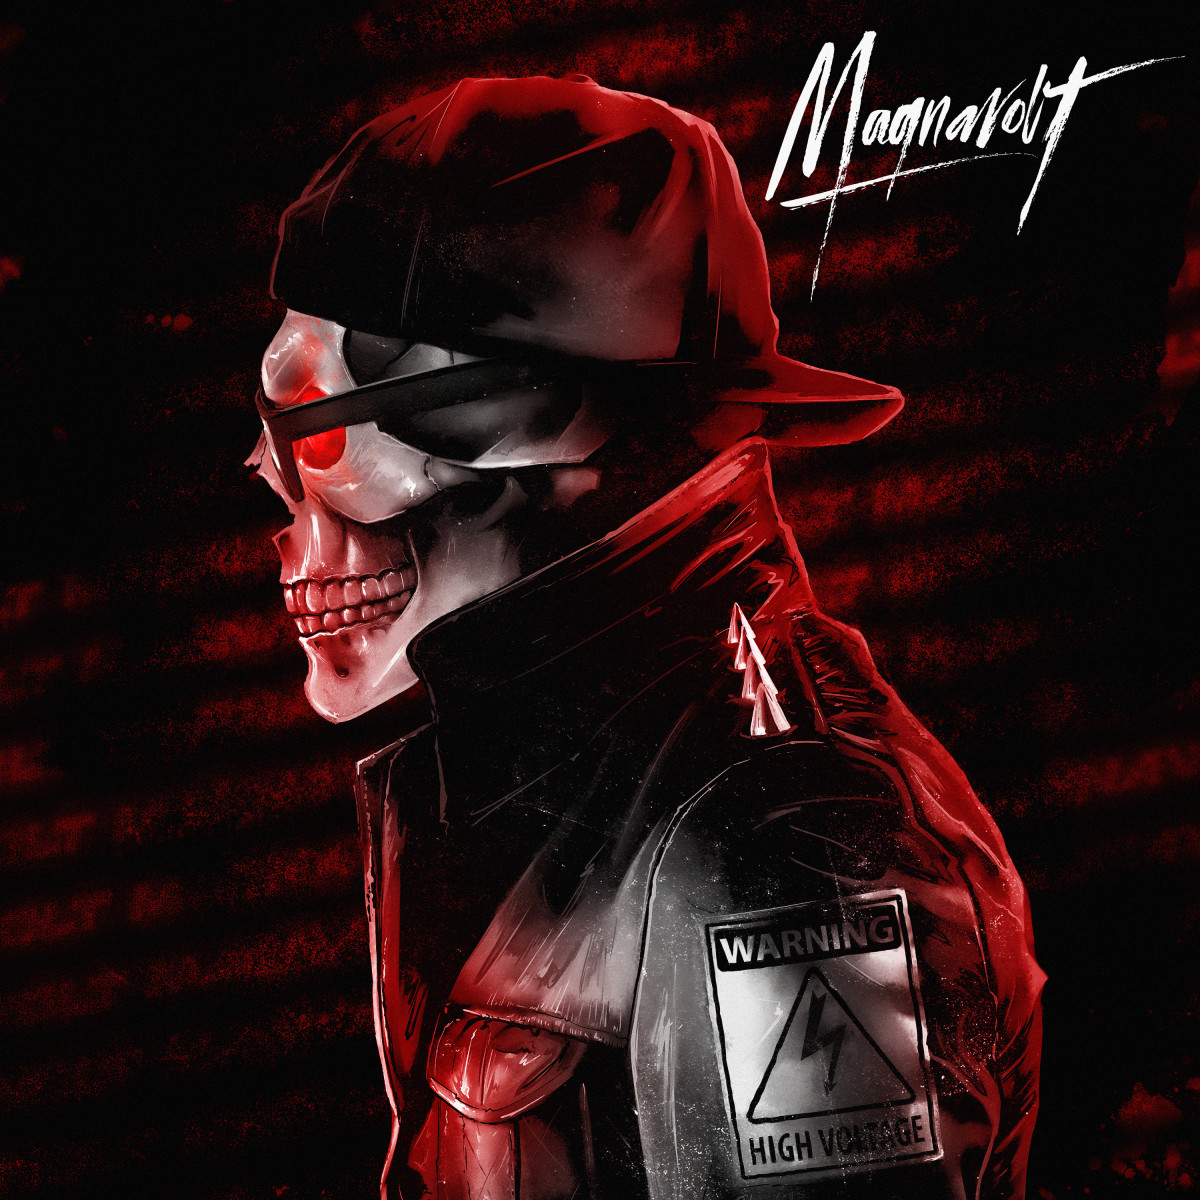 An Interview with Synthwave Producer Magnavolt